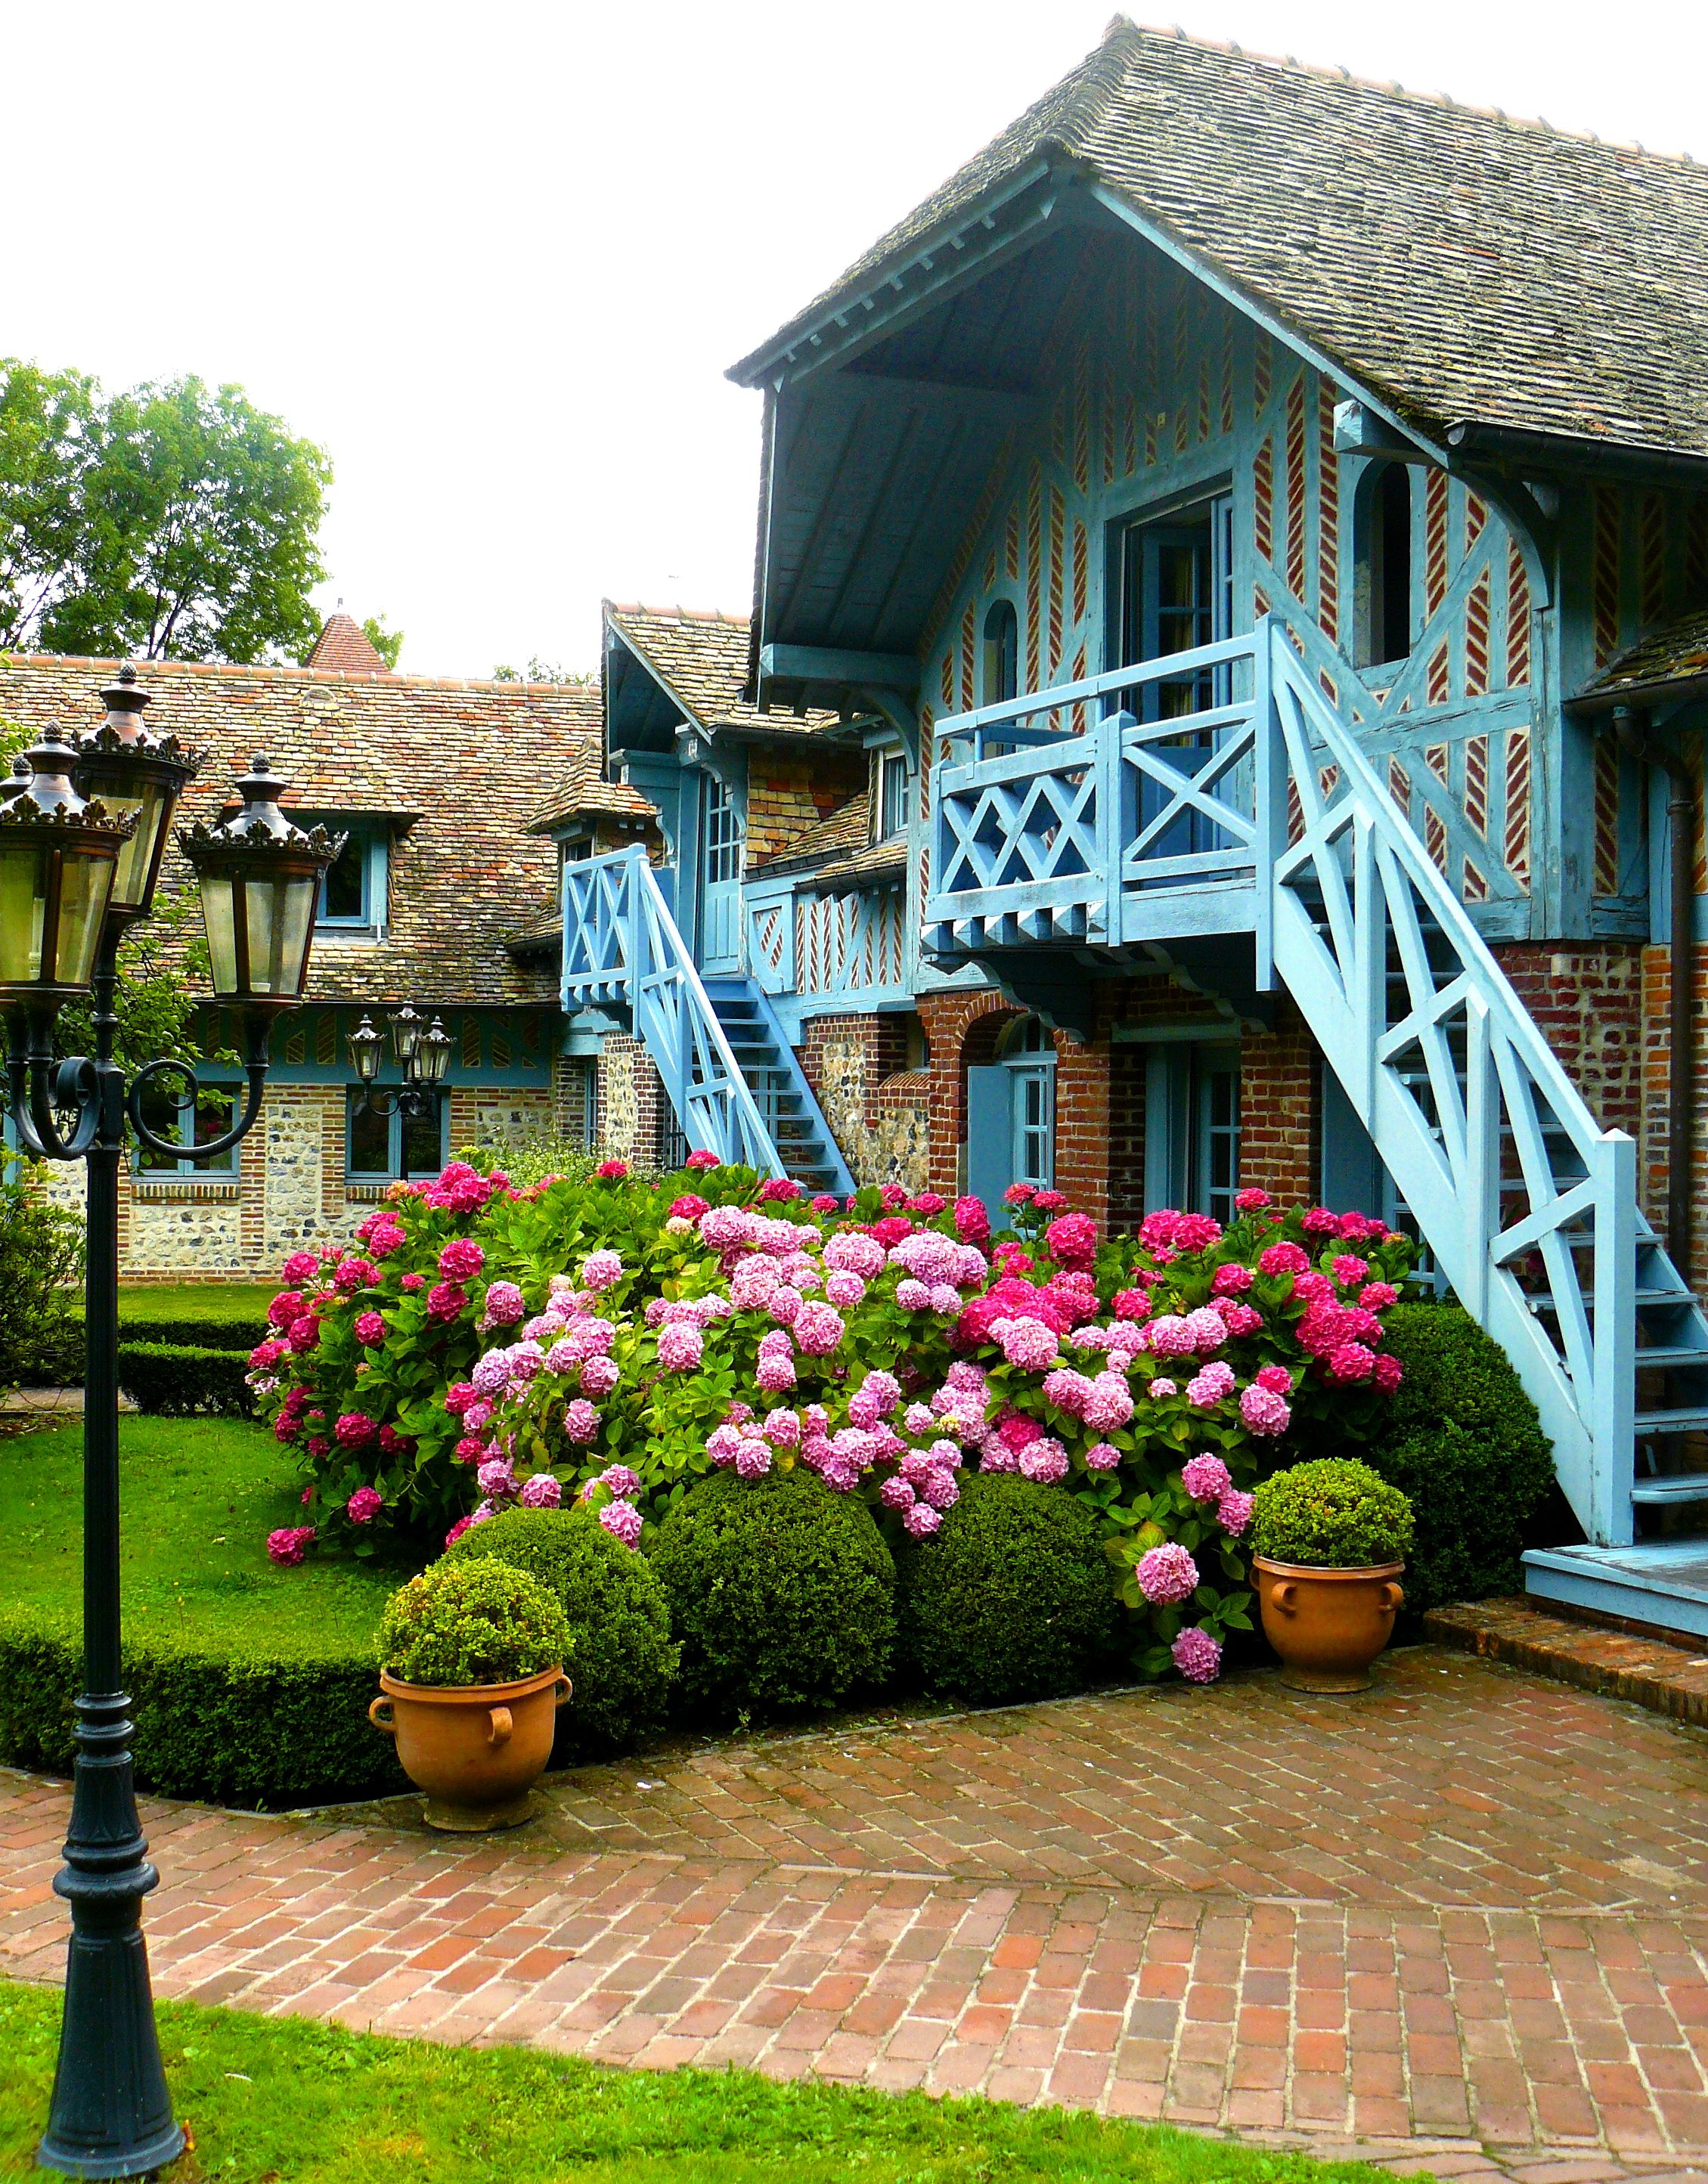 I Was Quite Lucky To Stay At La Ferme Saint Simeon In